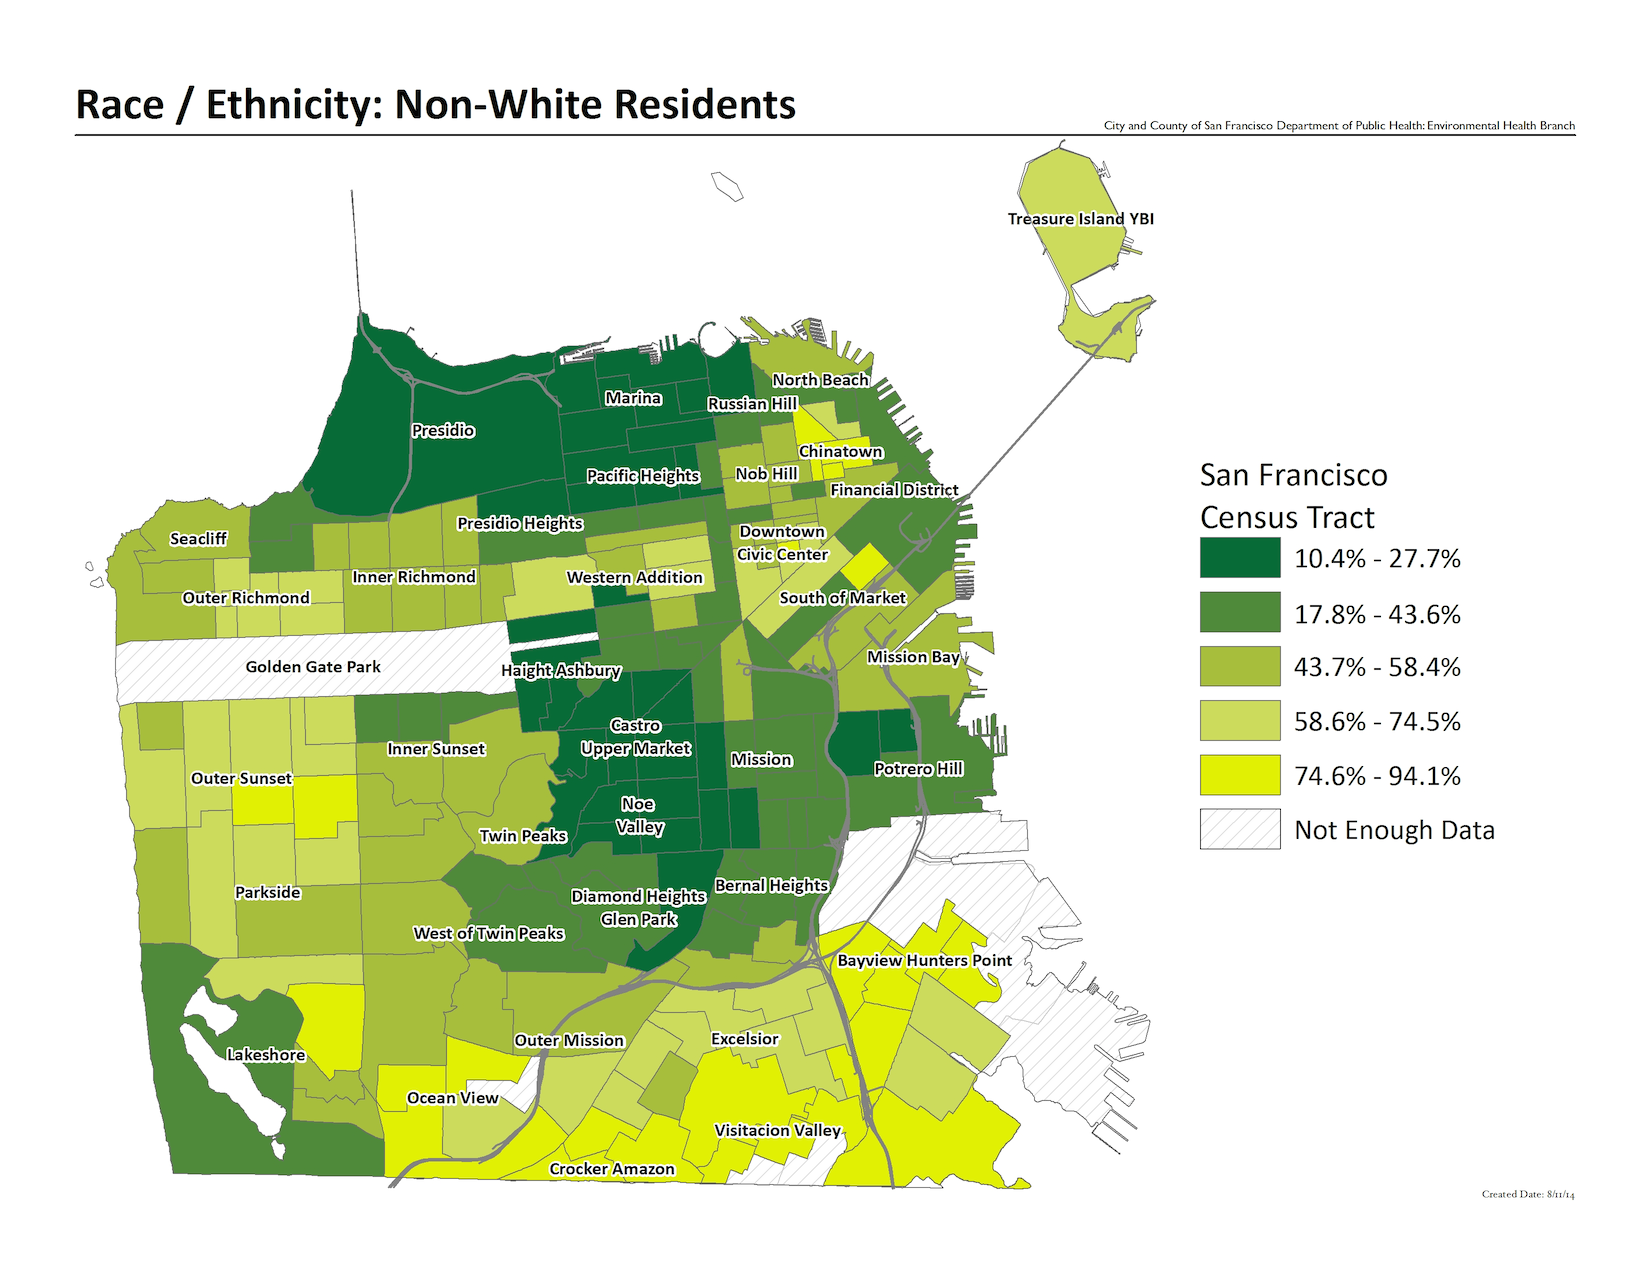 Map of Non-White residents by census tract. Outer Sunset and southern portions of the city have the largest concentrations.